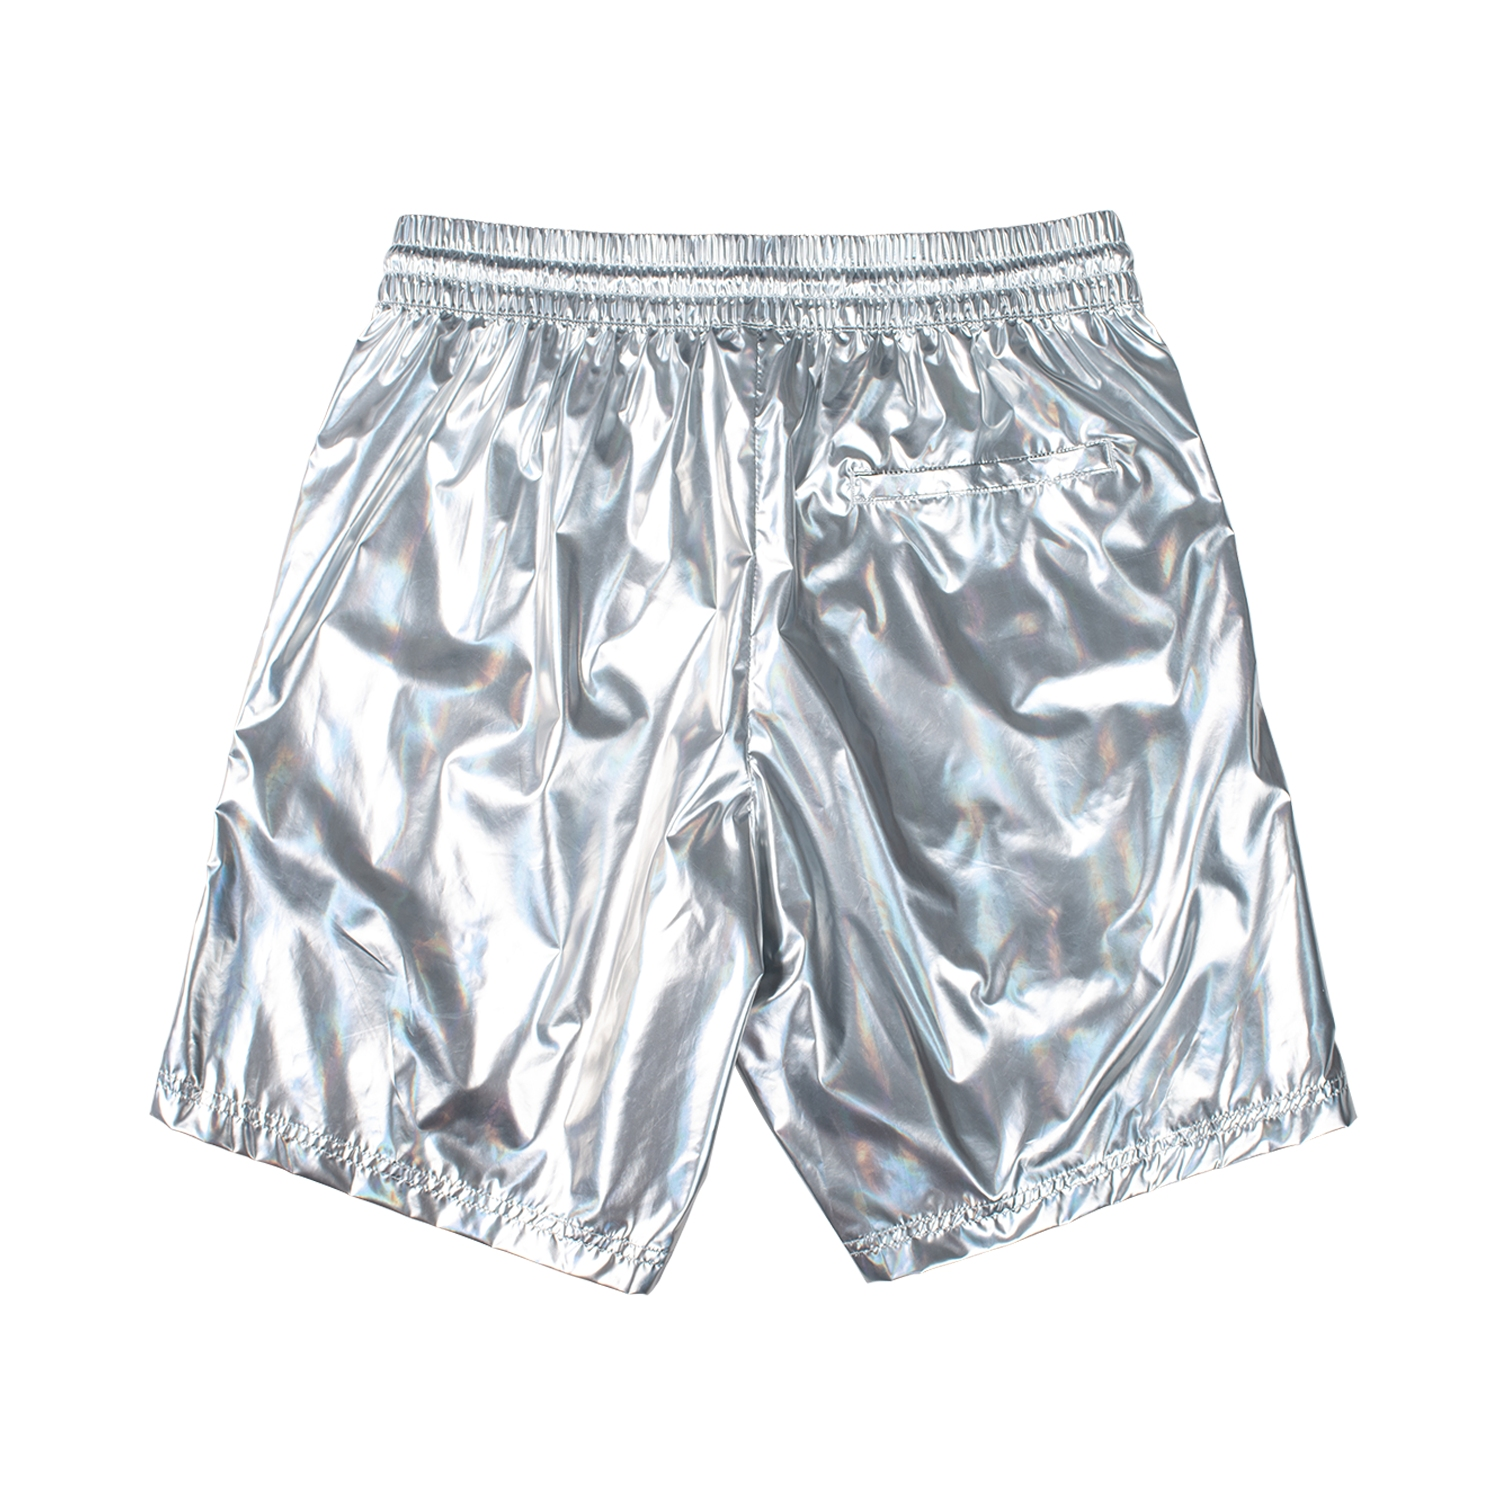 【PLEASURES/プレジャーズ】LIQUID METALLIC SHORTS ショートパンツ / SILVER